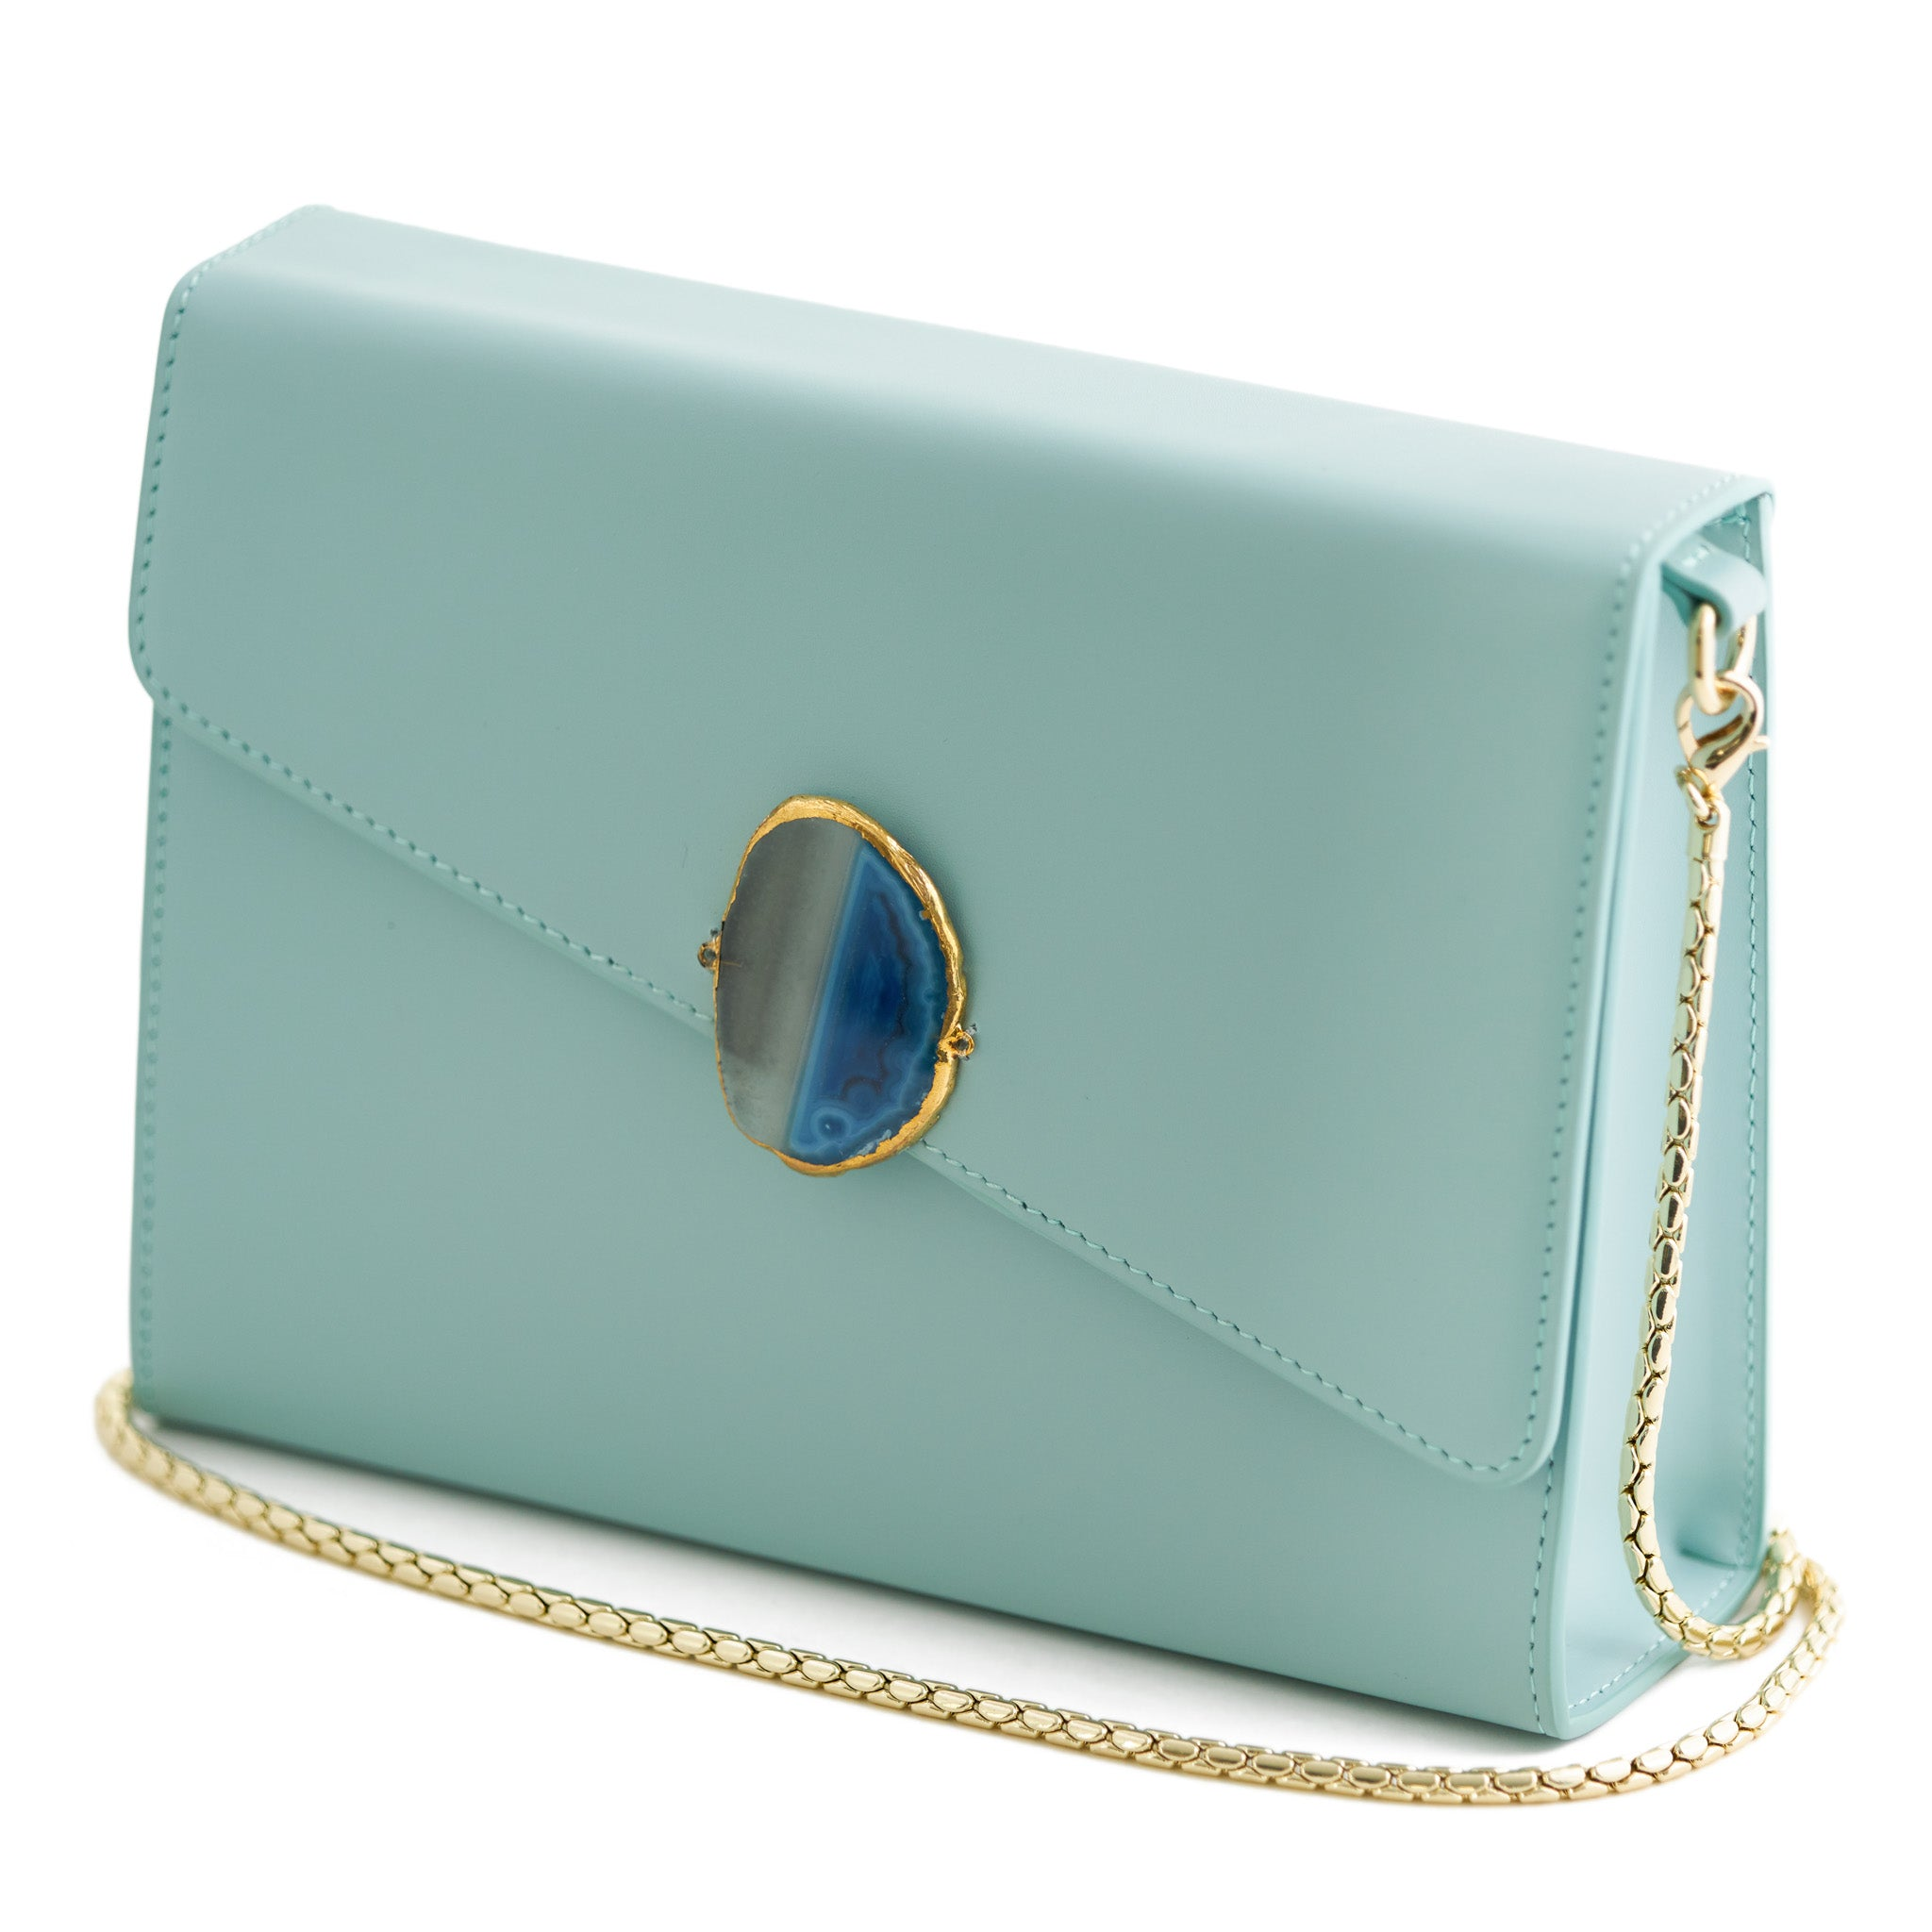 Loved Bag - Aquamarine Leather with Blue Agate